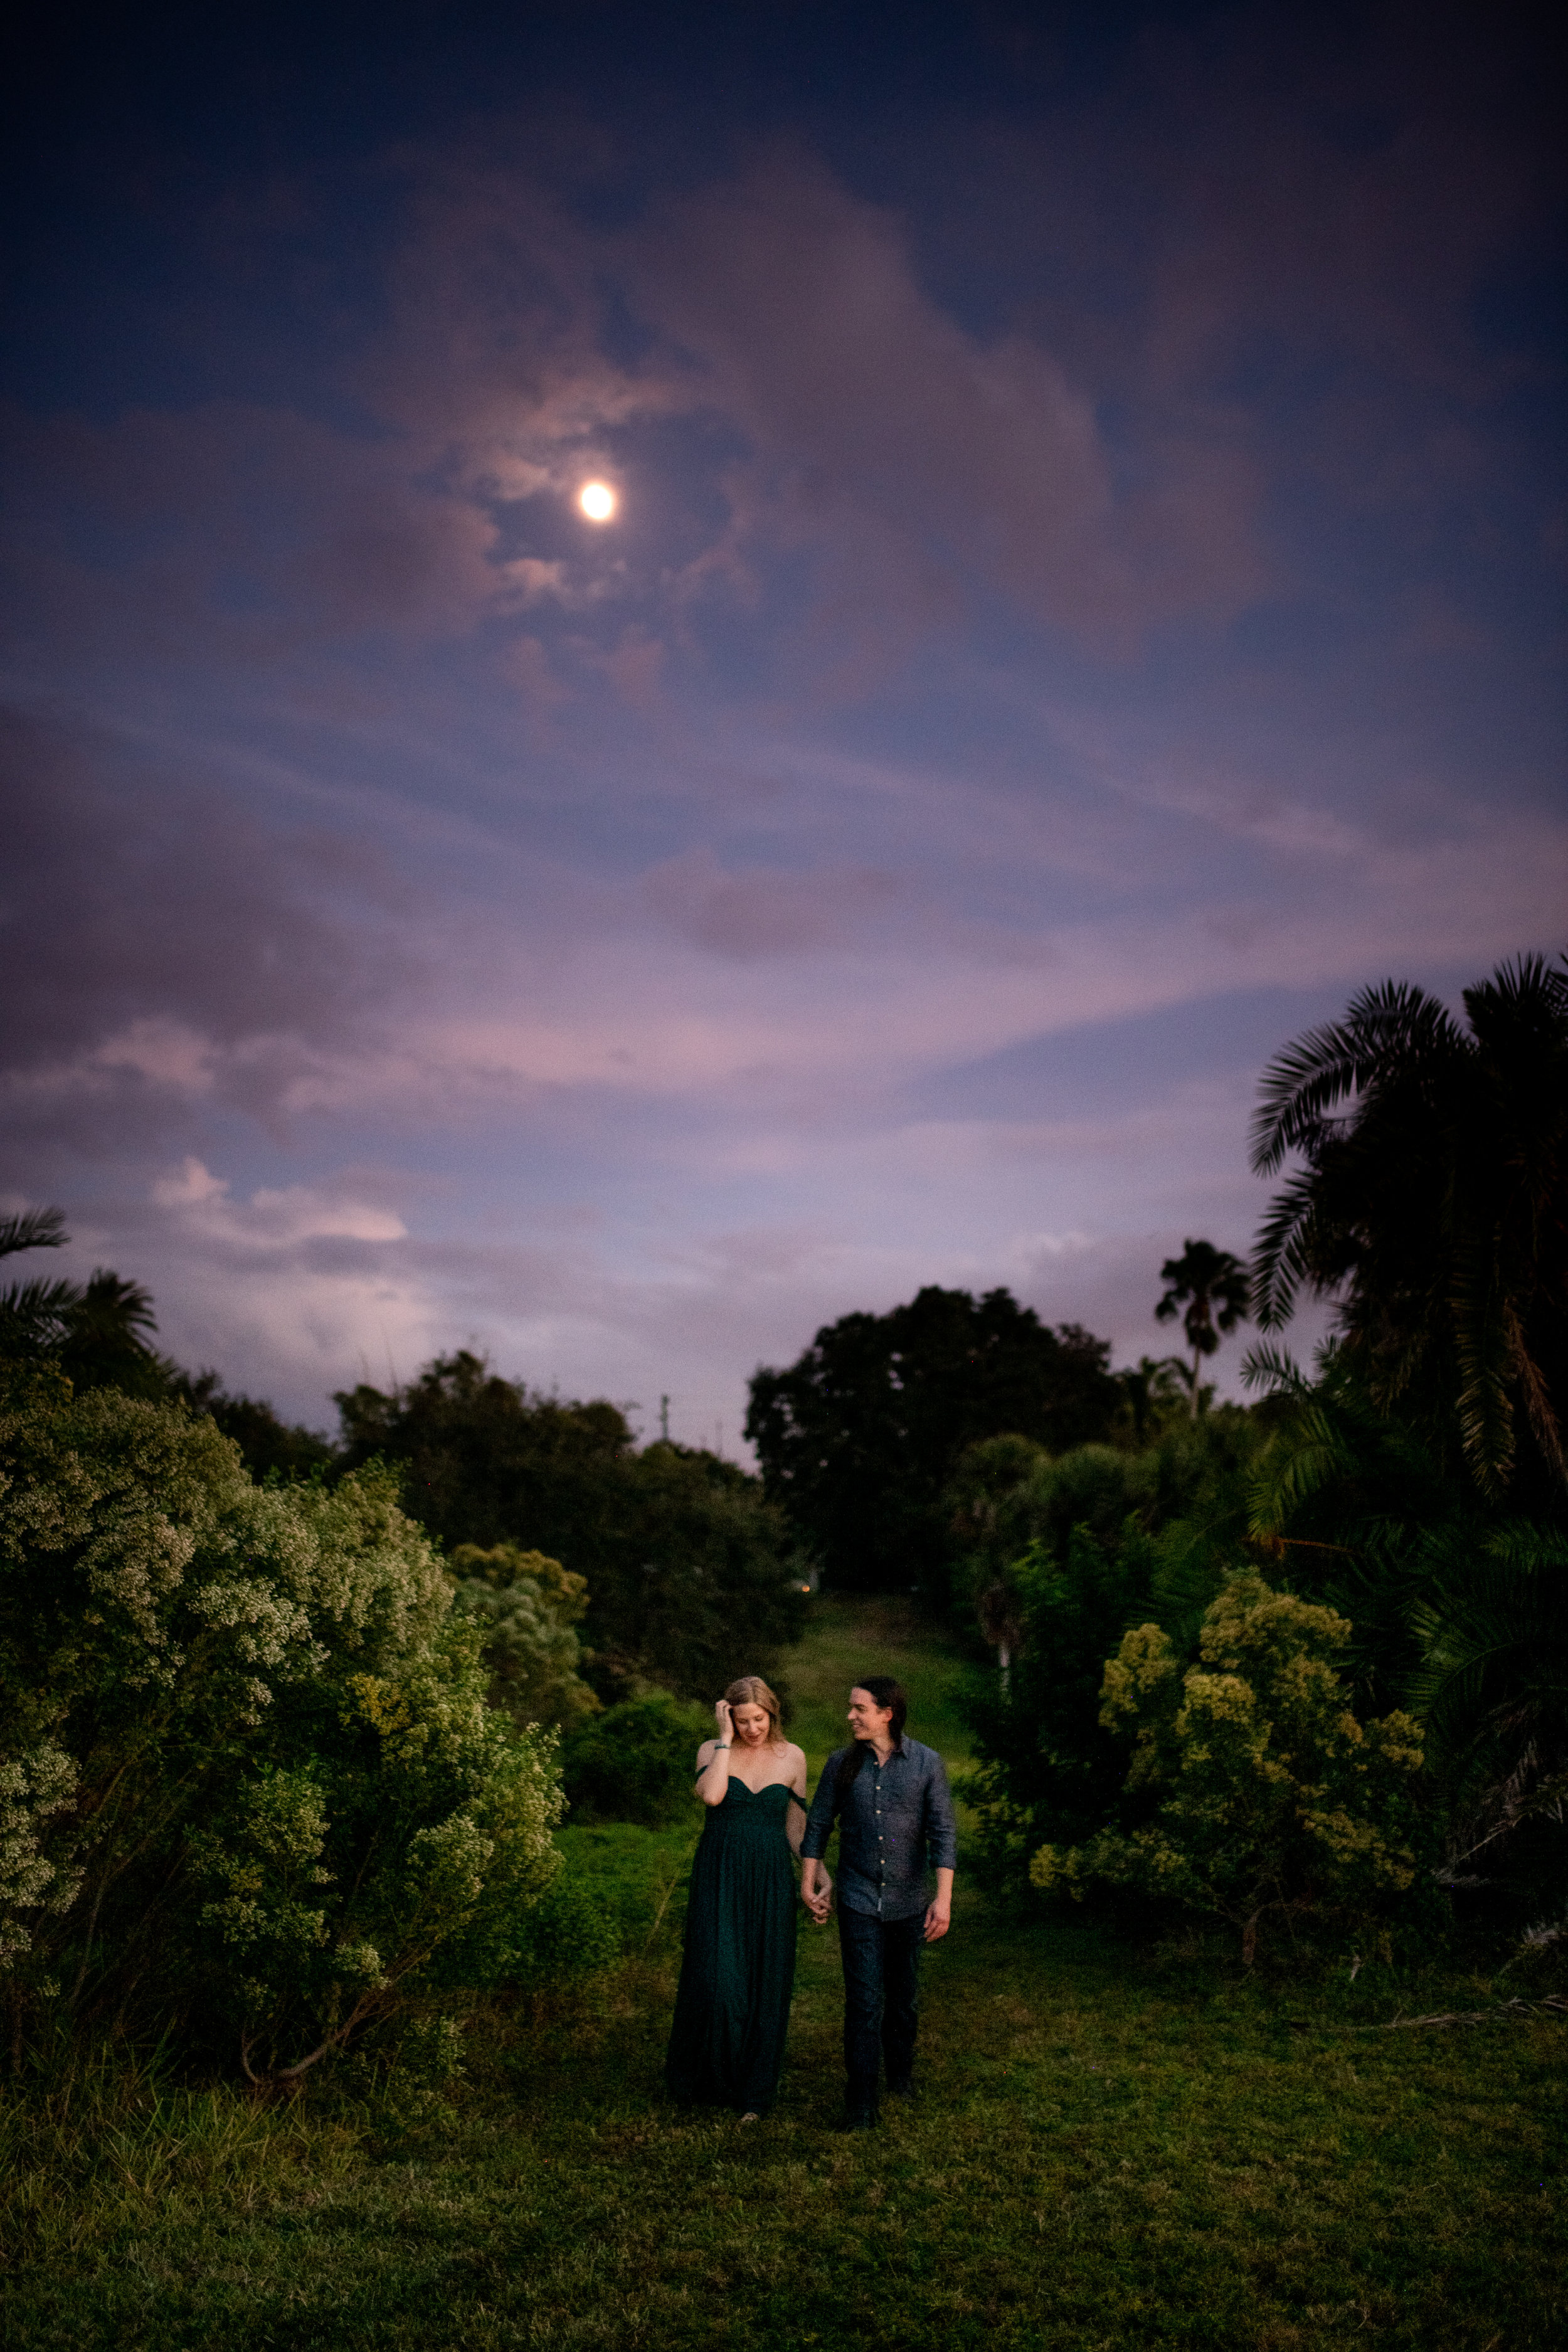 Couple walking down a grassy path under the moon